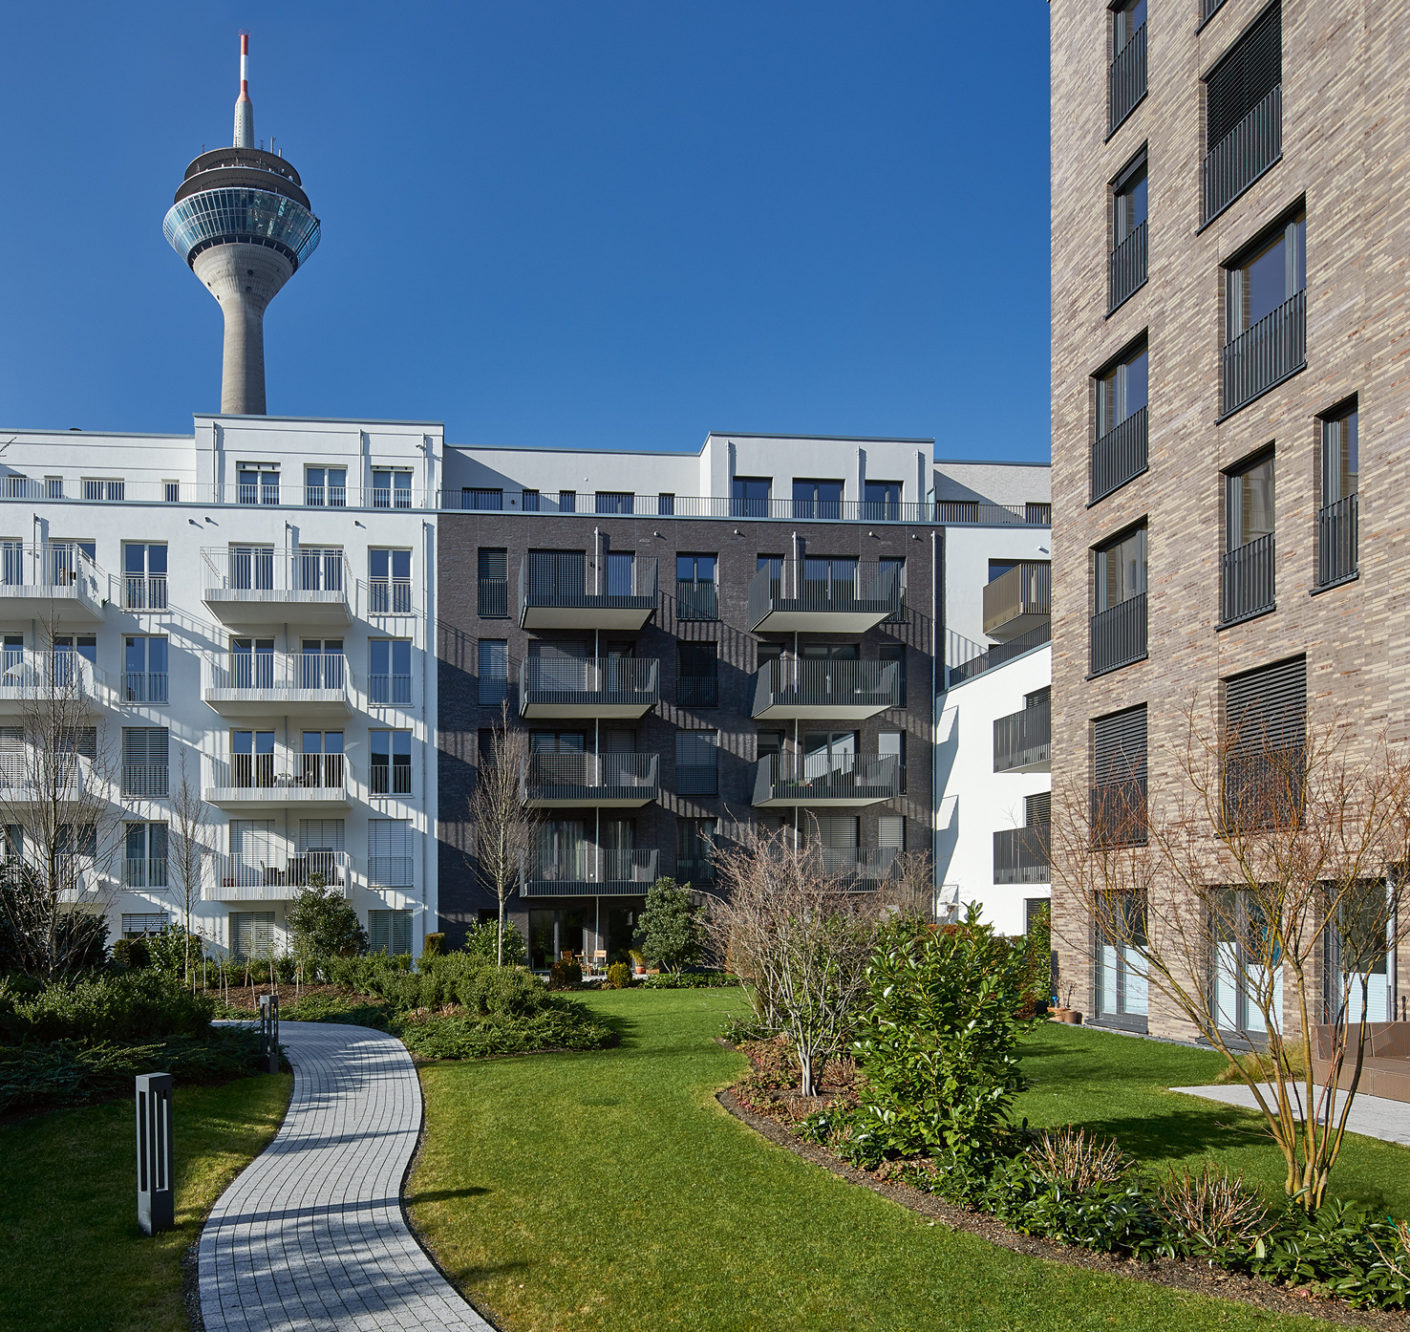 A central location that nevertheless offers quiet living: The new NeMo residential complex in Düsseldorf ideally combines these requirements.